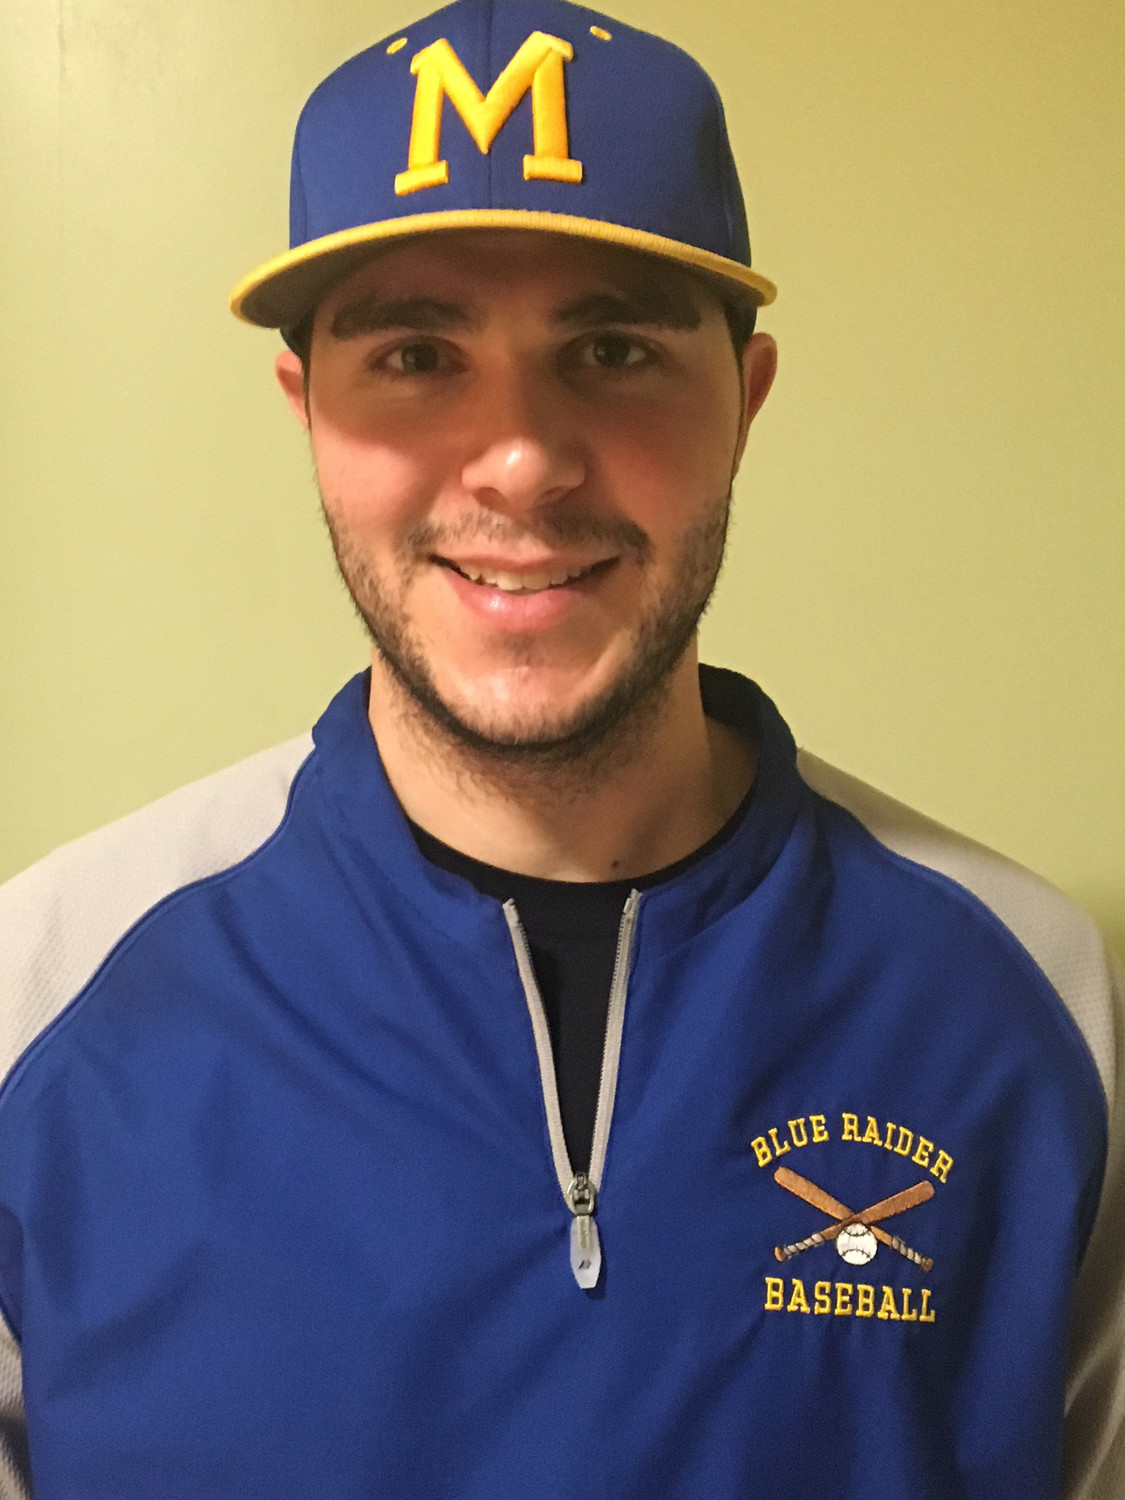 Middletown 2010 graduate Mike Lupia is returning to life as a Blue Raider, as the new head coach of the varsity baseball team at Middletown Area High School.